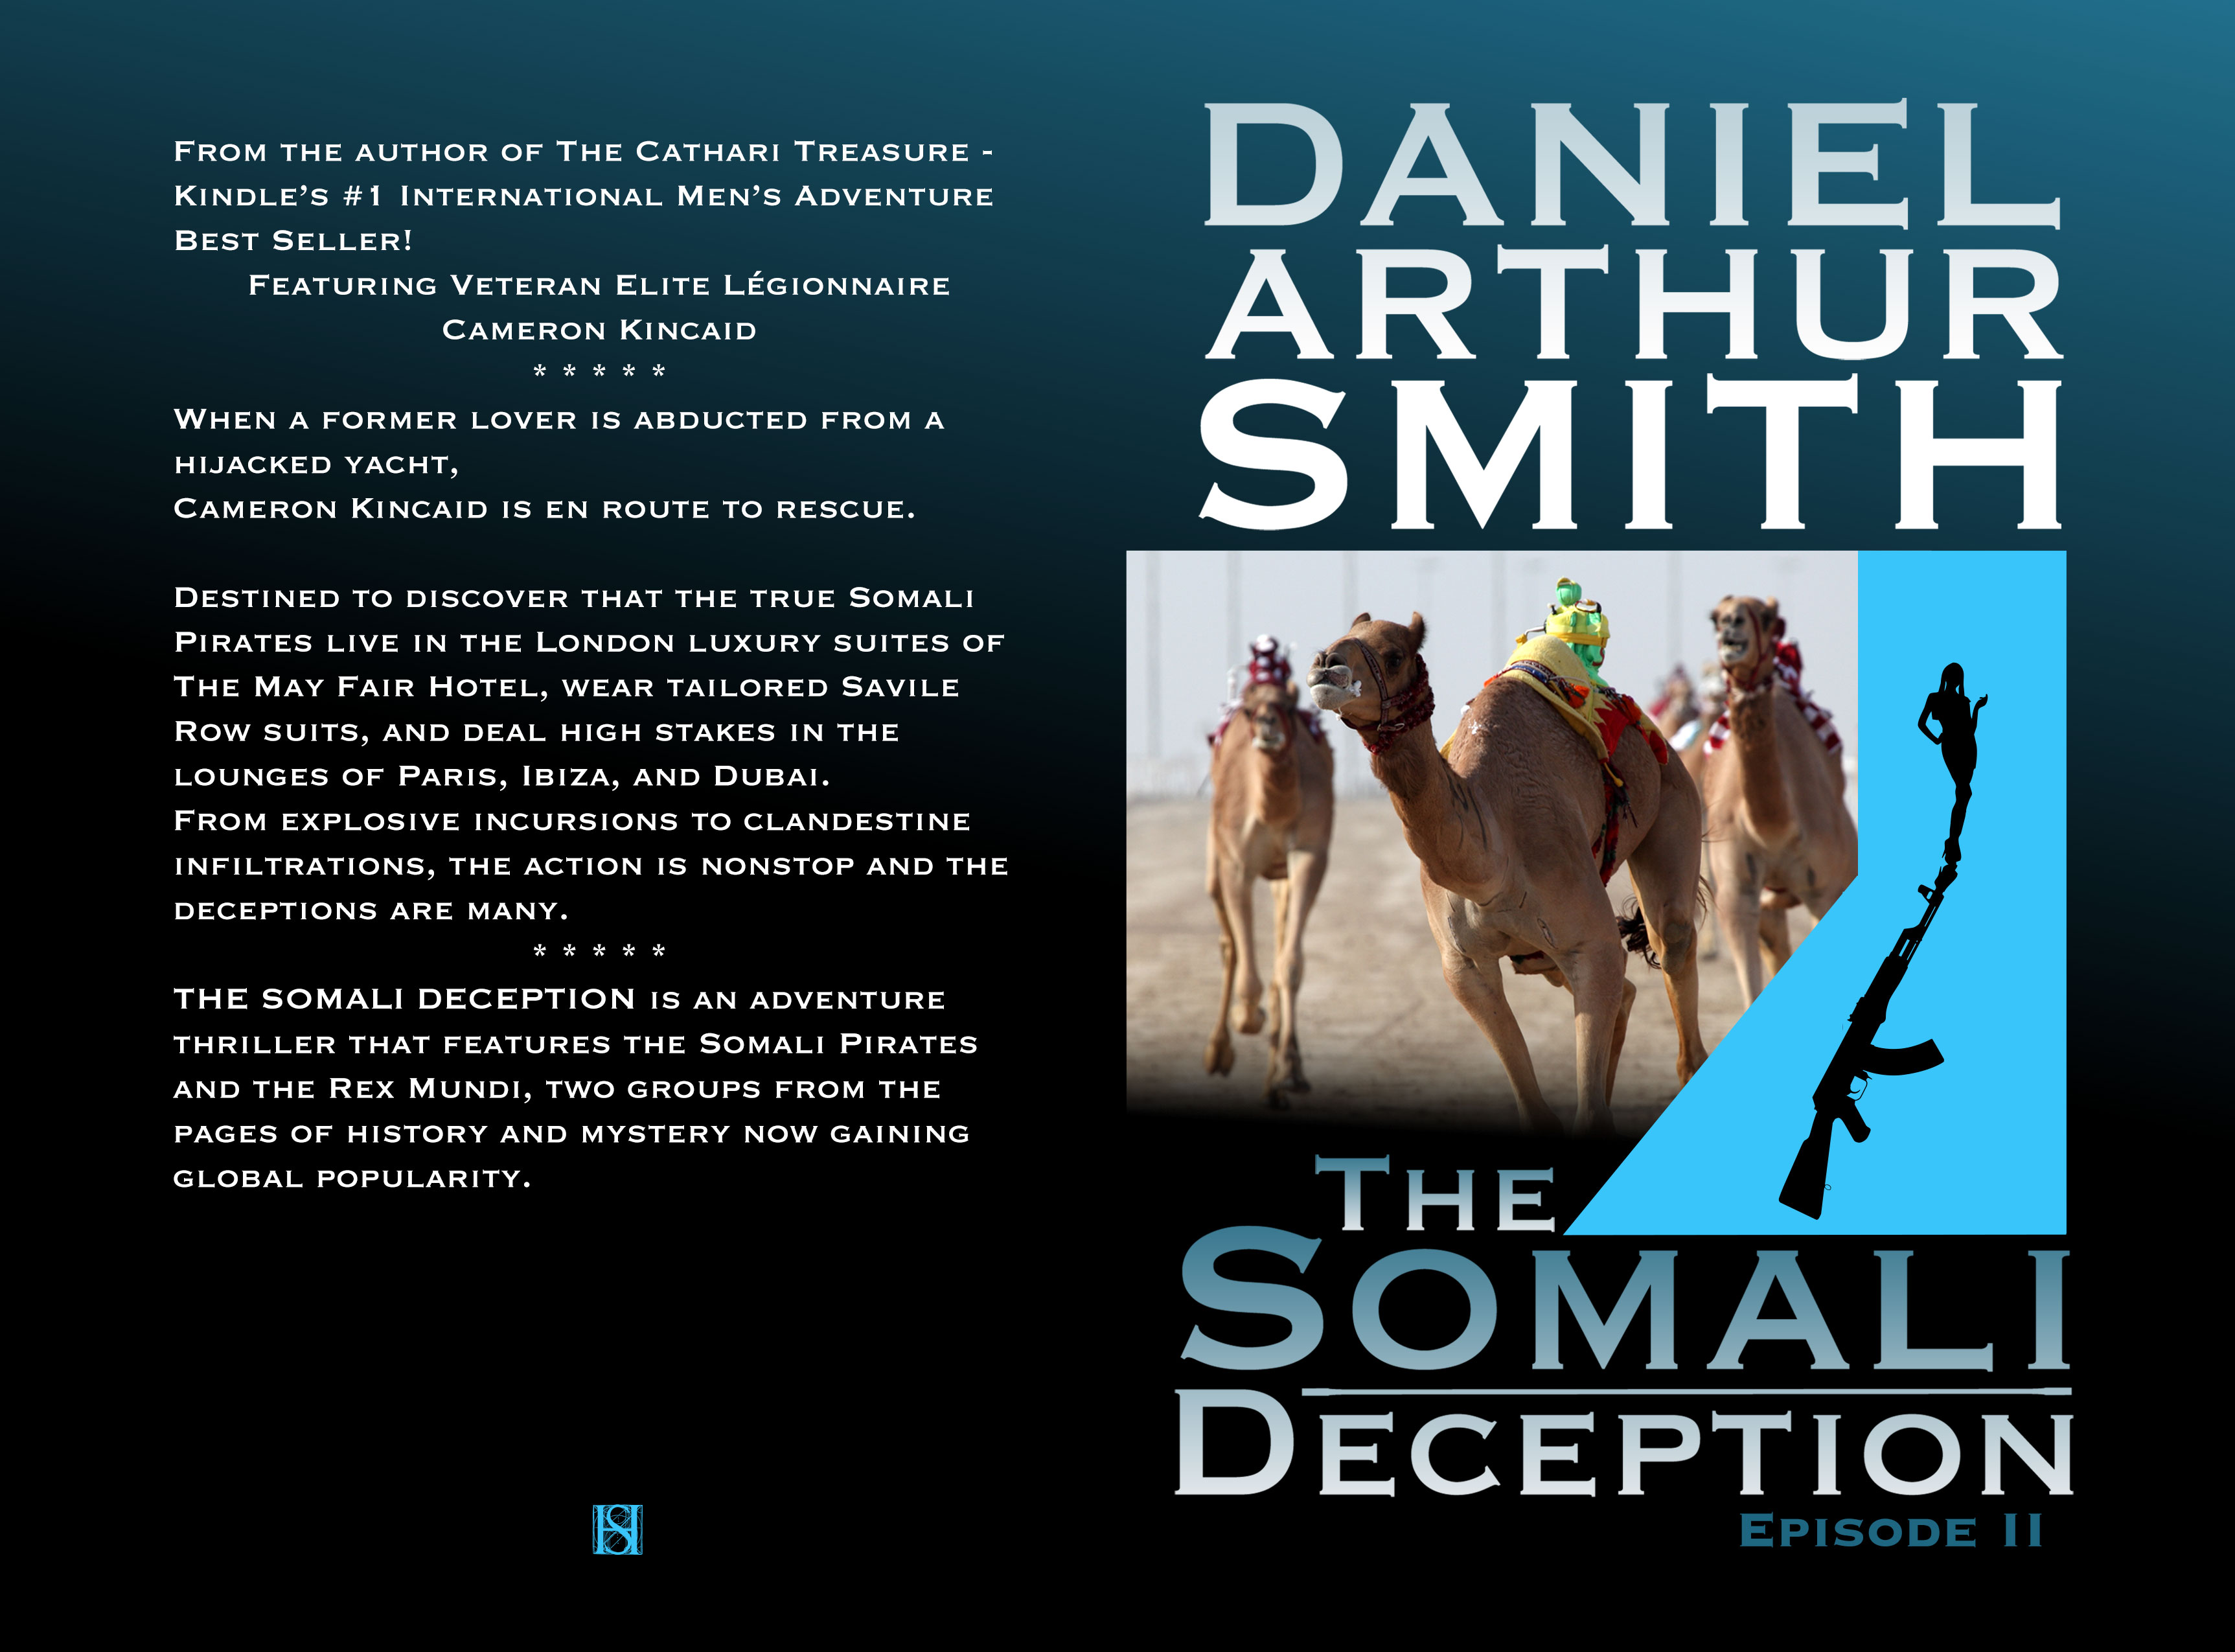 thesomaliepisodetwopapercover